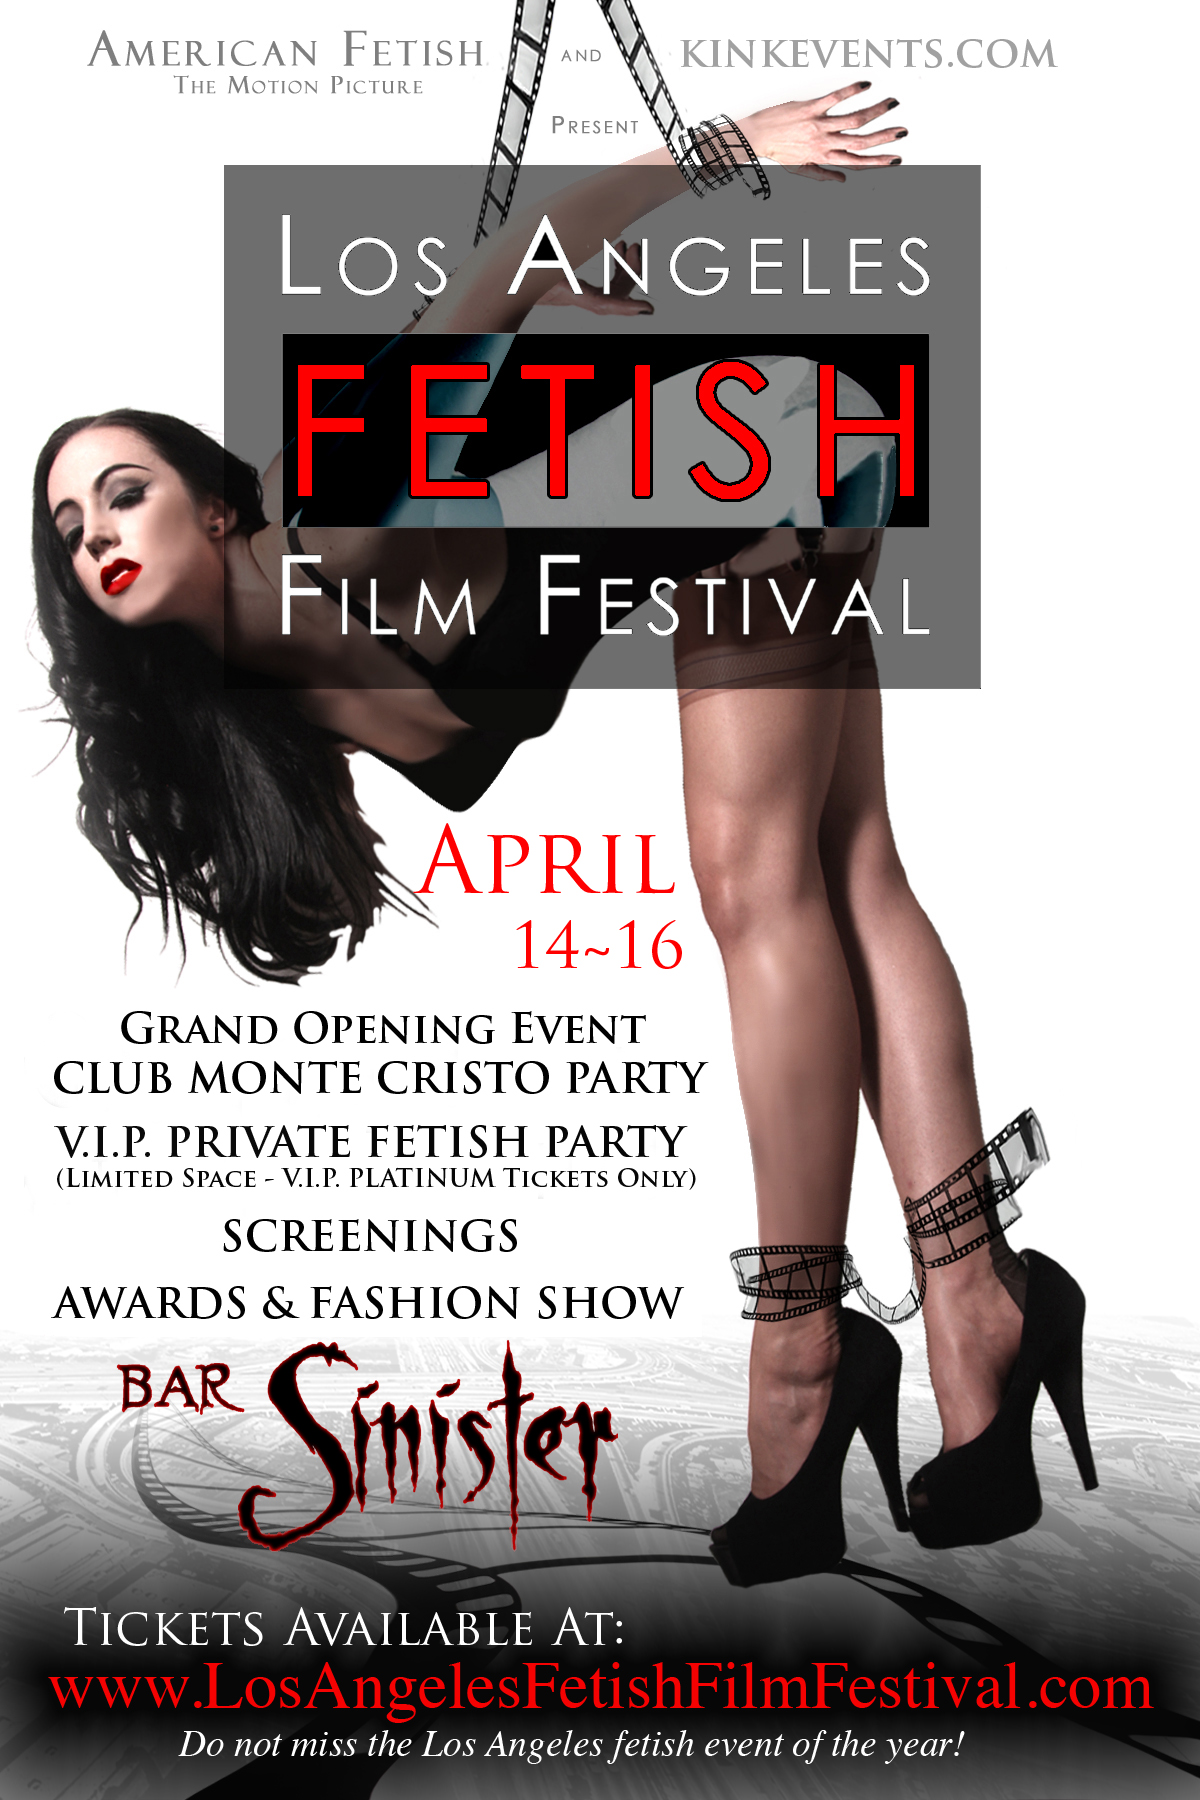 Los Angeles Fetish Film Festival 2011